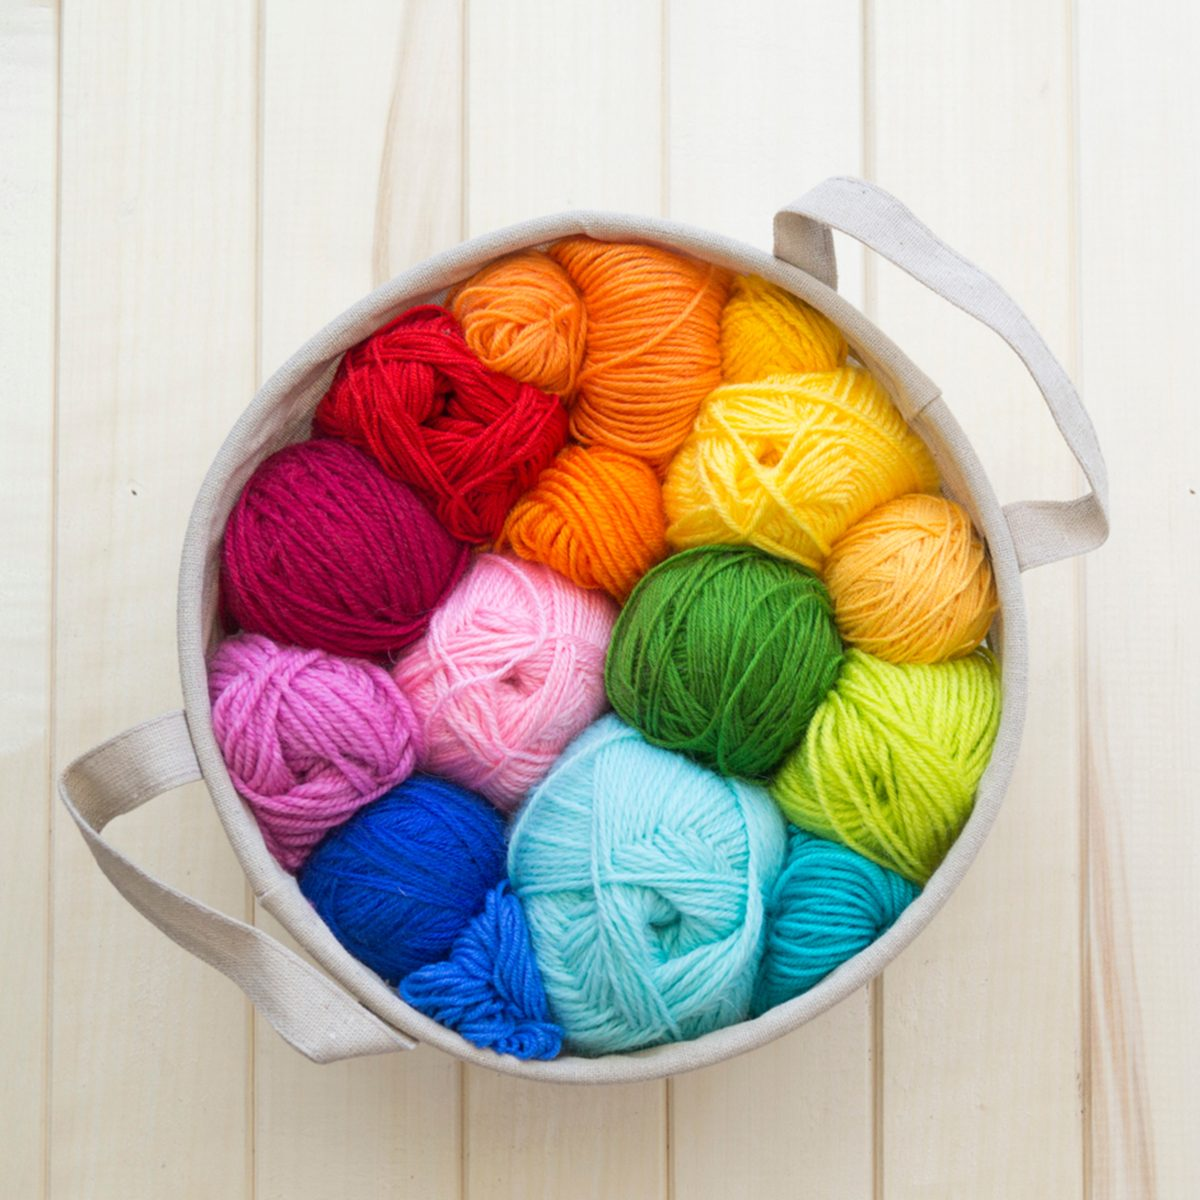 Colored balls of yarn.